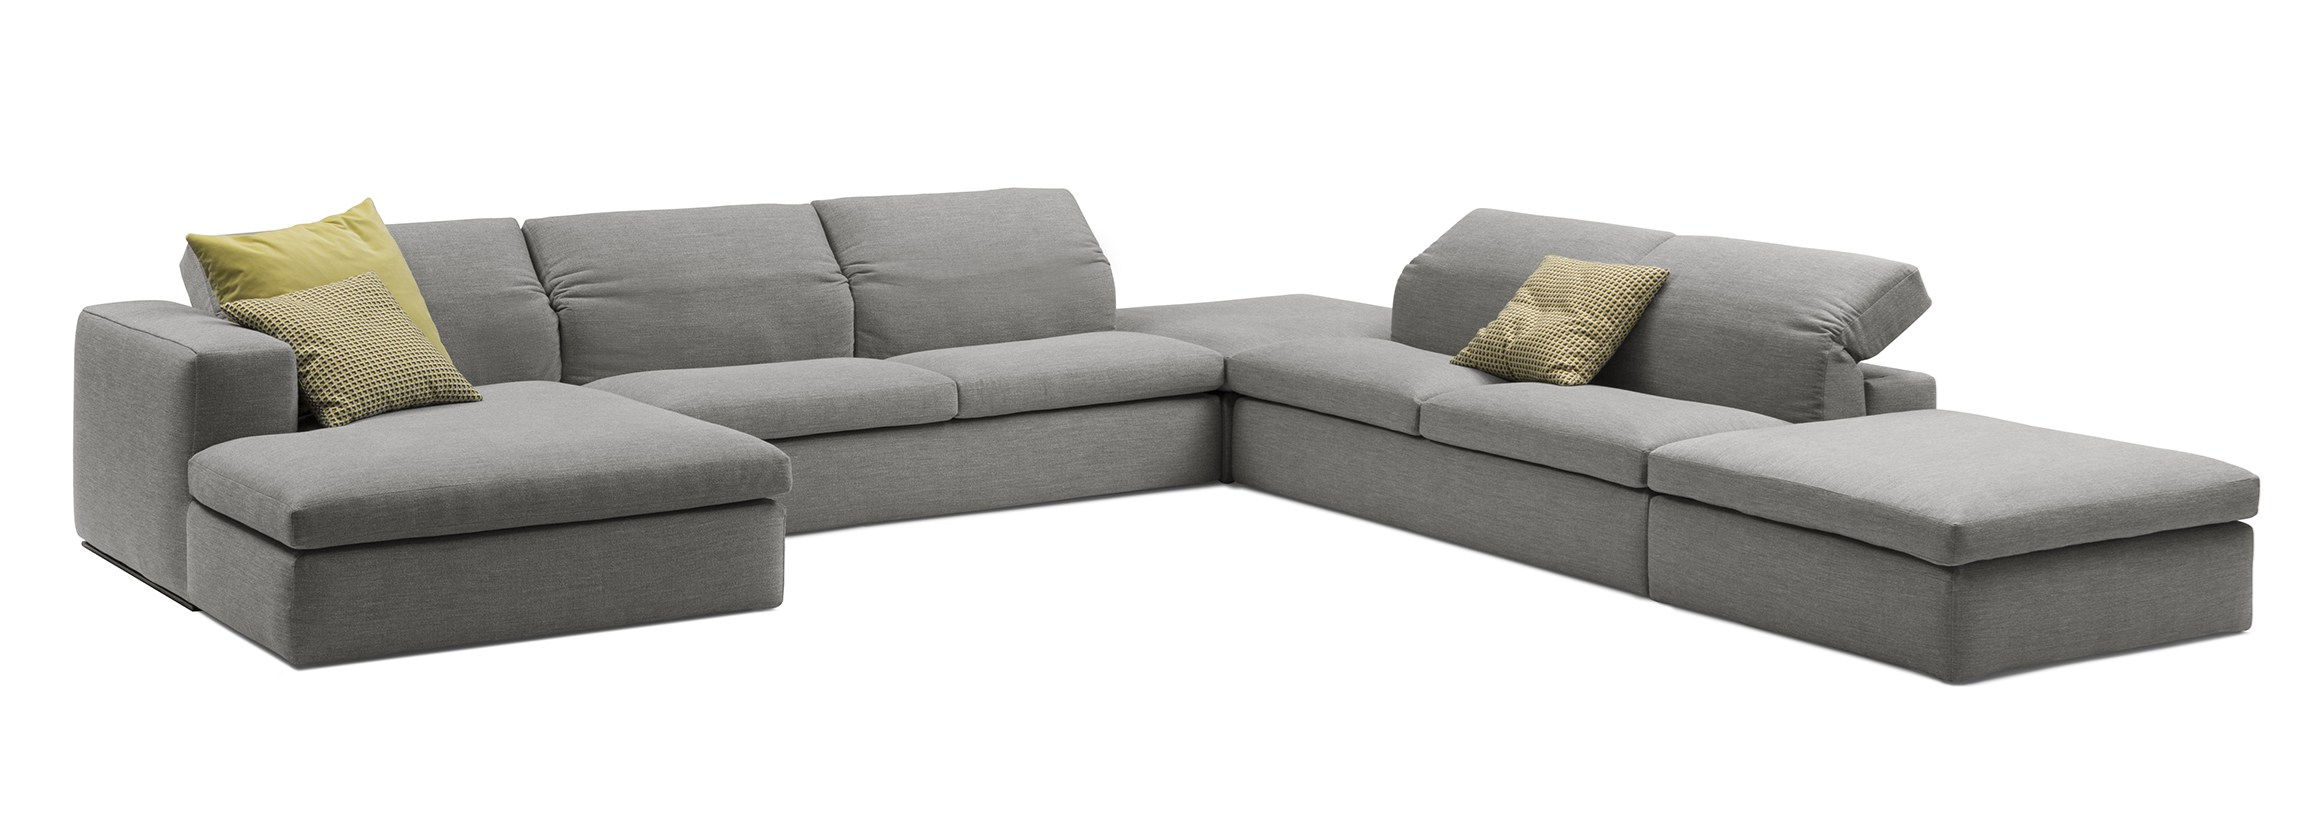 Sectional fabric sofa miami by bodema design giuseppe manzoni for Sectional couch miami